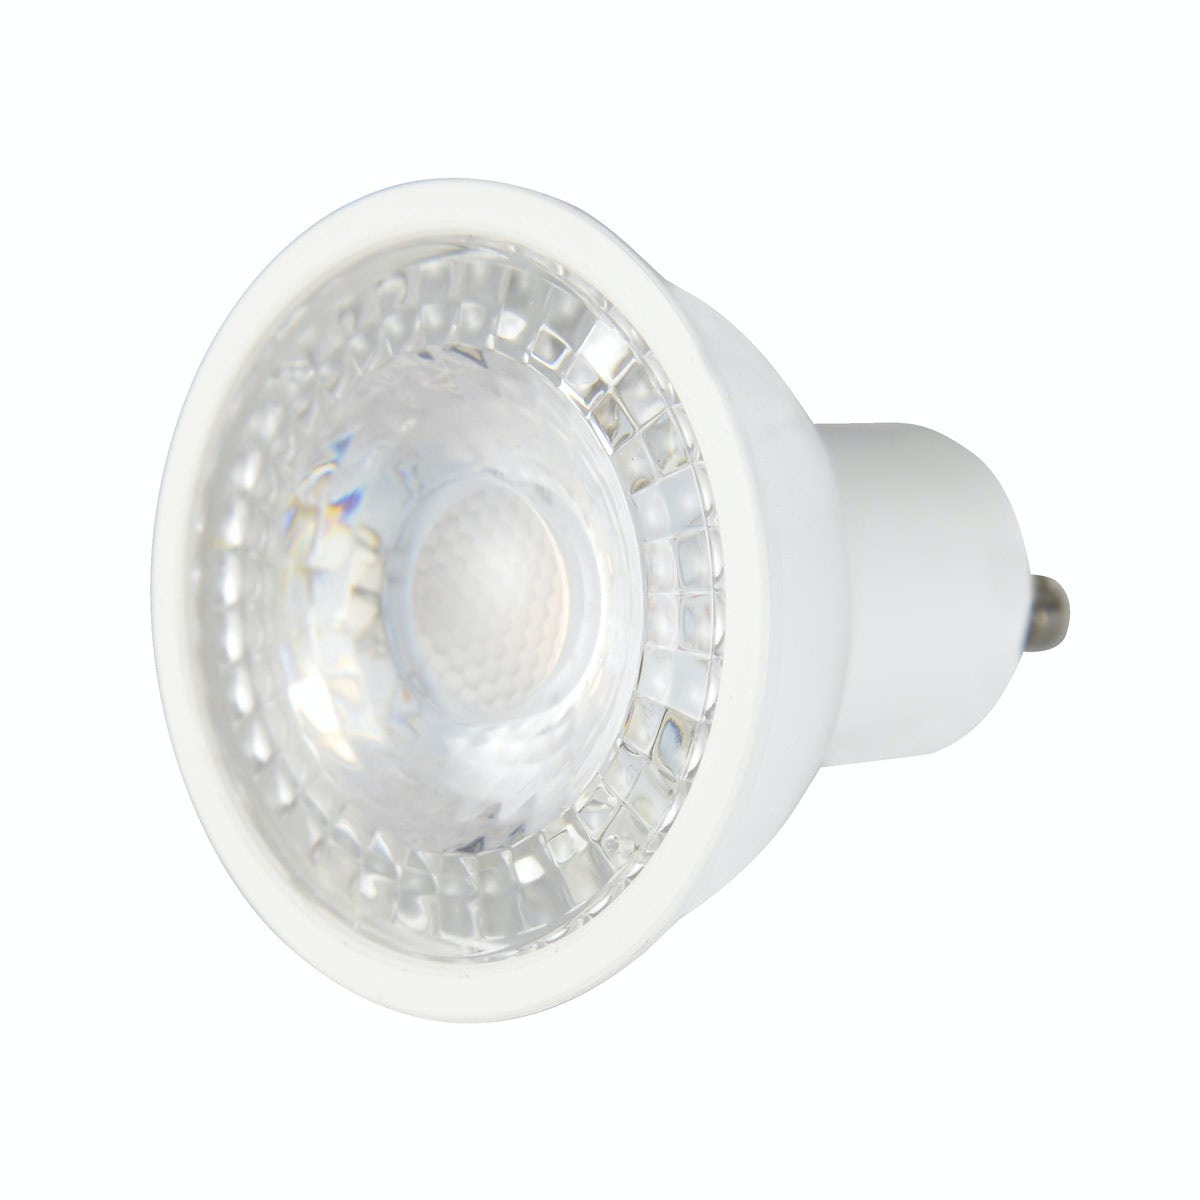 Forum cool white GU10 LED bulb for downlights